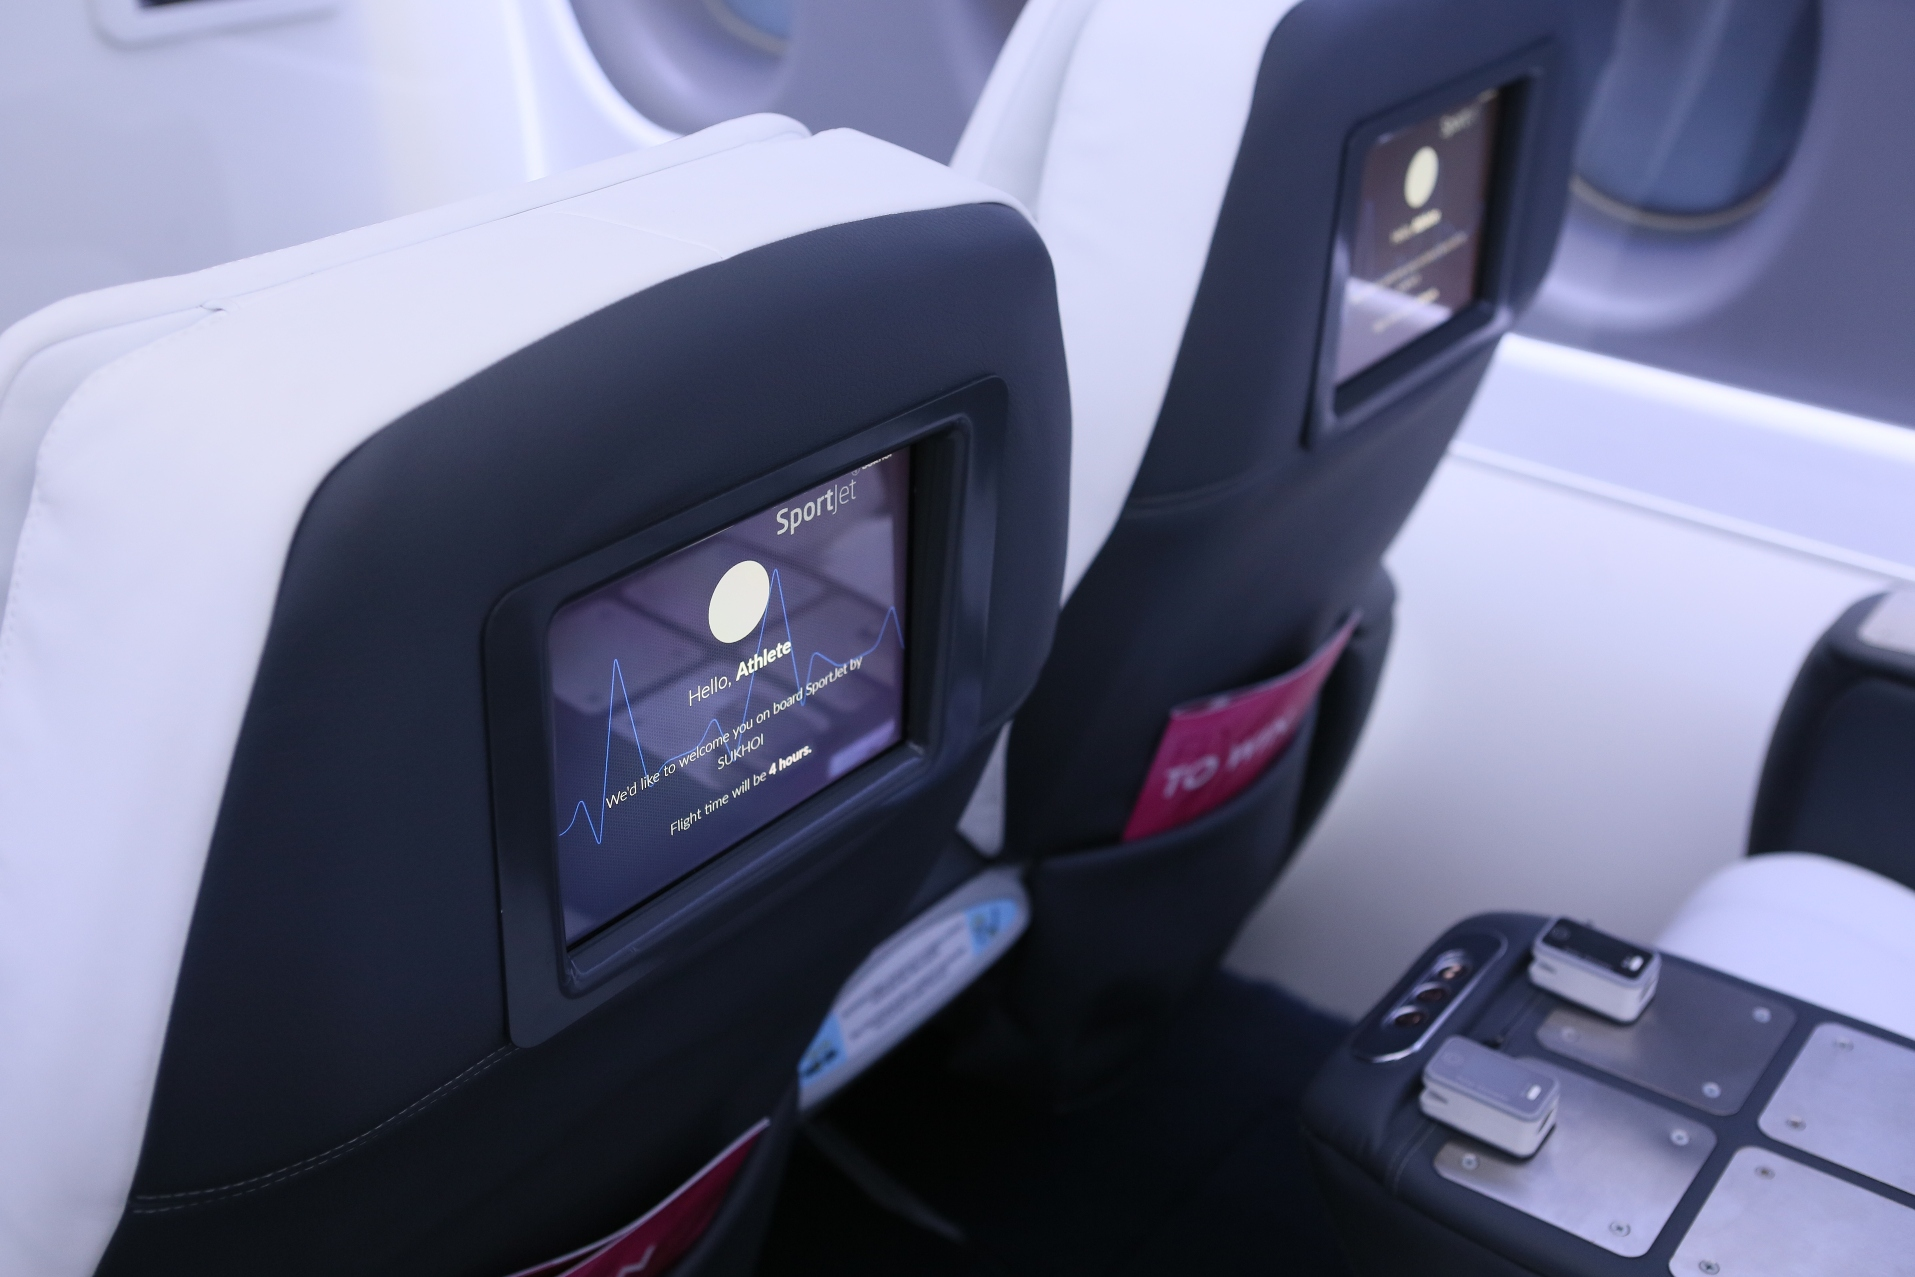 Each seat comes with a personal greeting for the player and much more. Image: Sukhoi